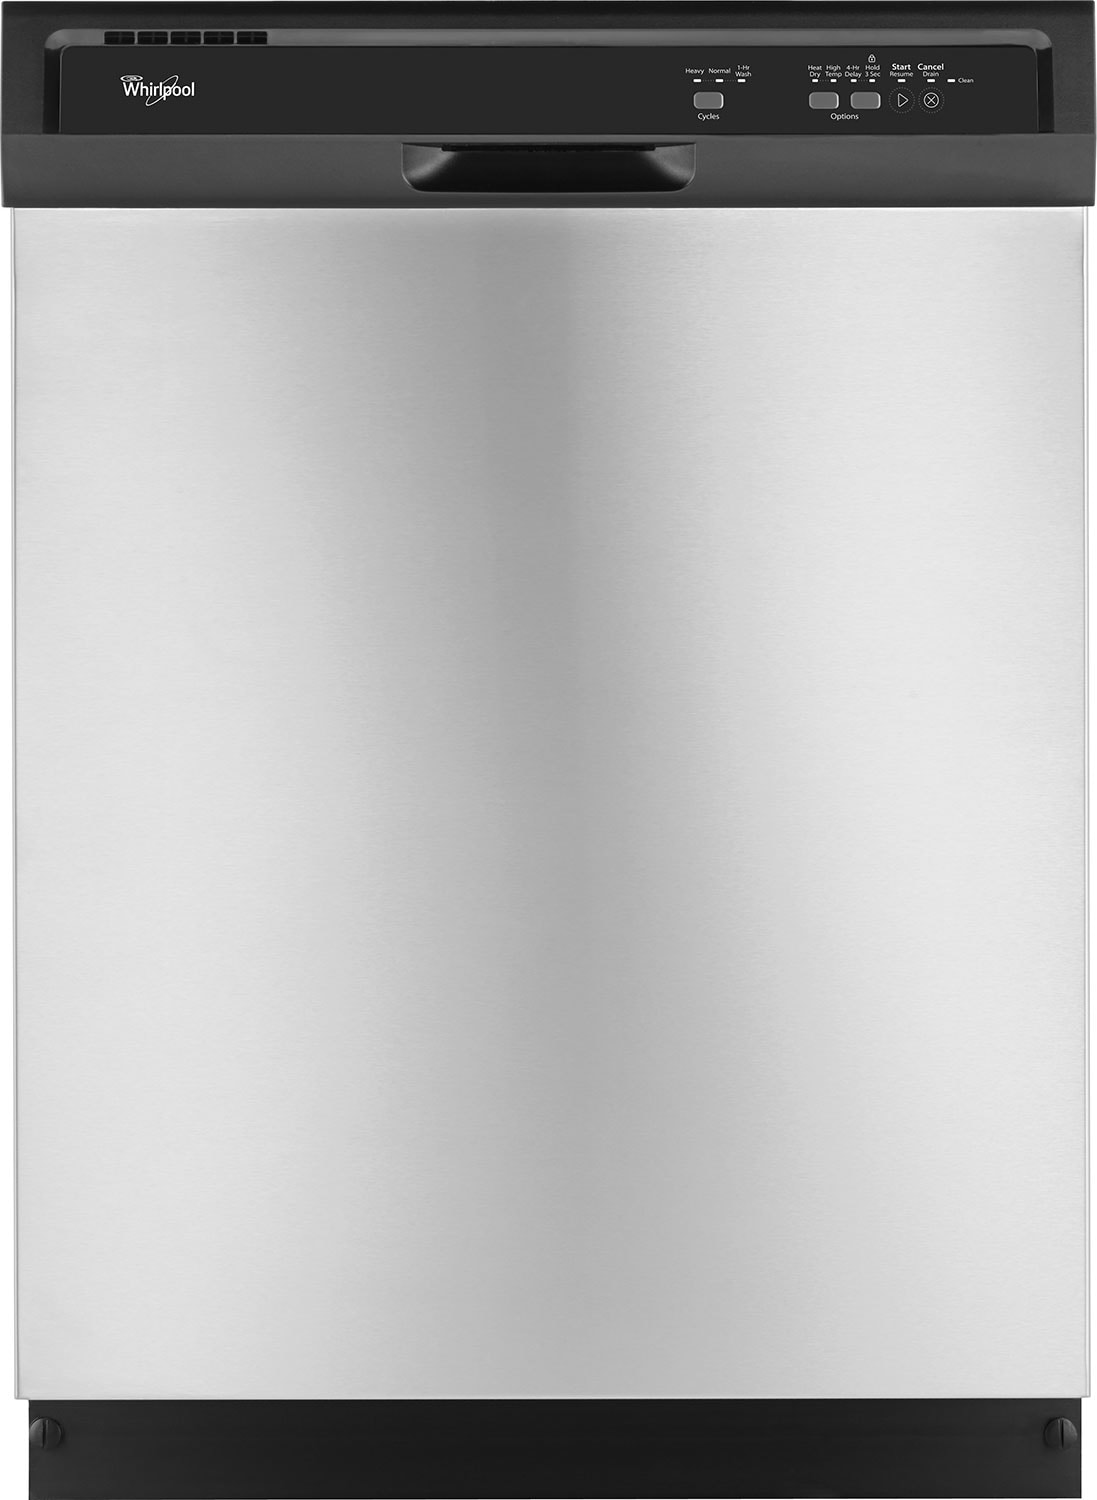 Clean-Up - Whirlpool® Built-In Dishwasher – Stainless Steel